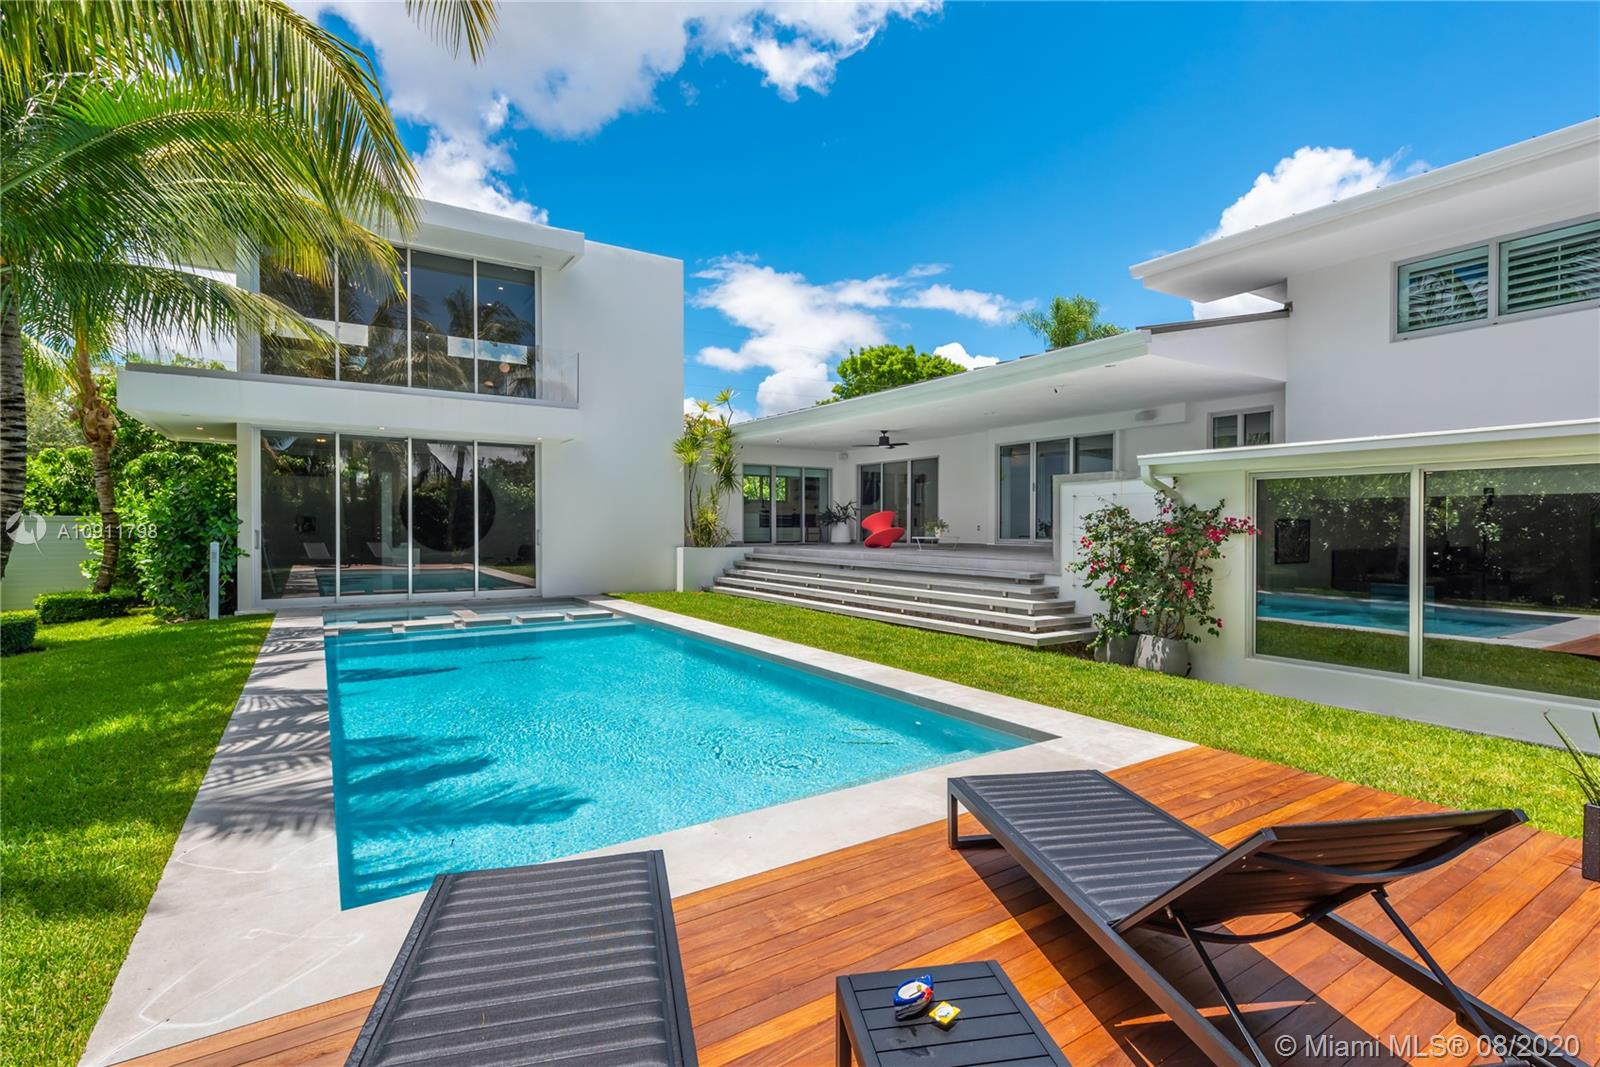 A piece of the Hollywood Hills in the heart of South Miami. Set on an oversized corner lot, This custom home was redesigned & reimagined by LUMINAIRE in 2019 as a timeless sanctuary for art collectors. Open entertaining spaces and retractable glass walls bring in an abundance of natural light during the day. Gorgeous pool and garden views expertly lit at night. Italian crafted Porro closets lead the way to the centerpiece of the home: a sumptuous two story Master Wing that takes living to new heights. Fully equipped with SMART home technologies, Sonos, & security systems, Leicht Kitchen with Sub Zero & Gaggenau Appliances, heated saltwater pool, fitness center, 2 car garage & motorcourt for the car enthusiast. Convertible 4th BED. Ideally located nearby top schools / business districts.